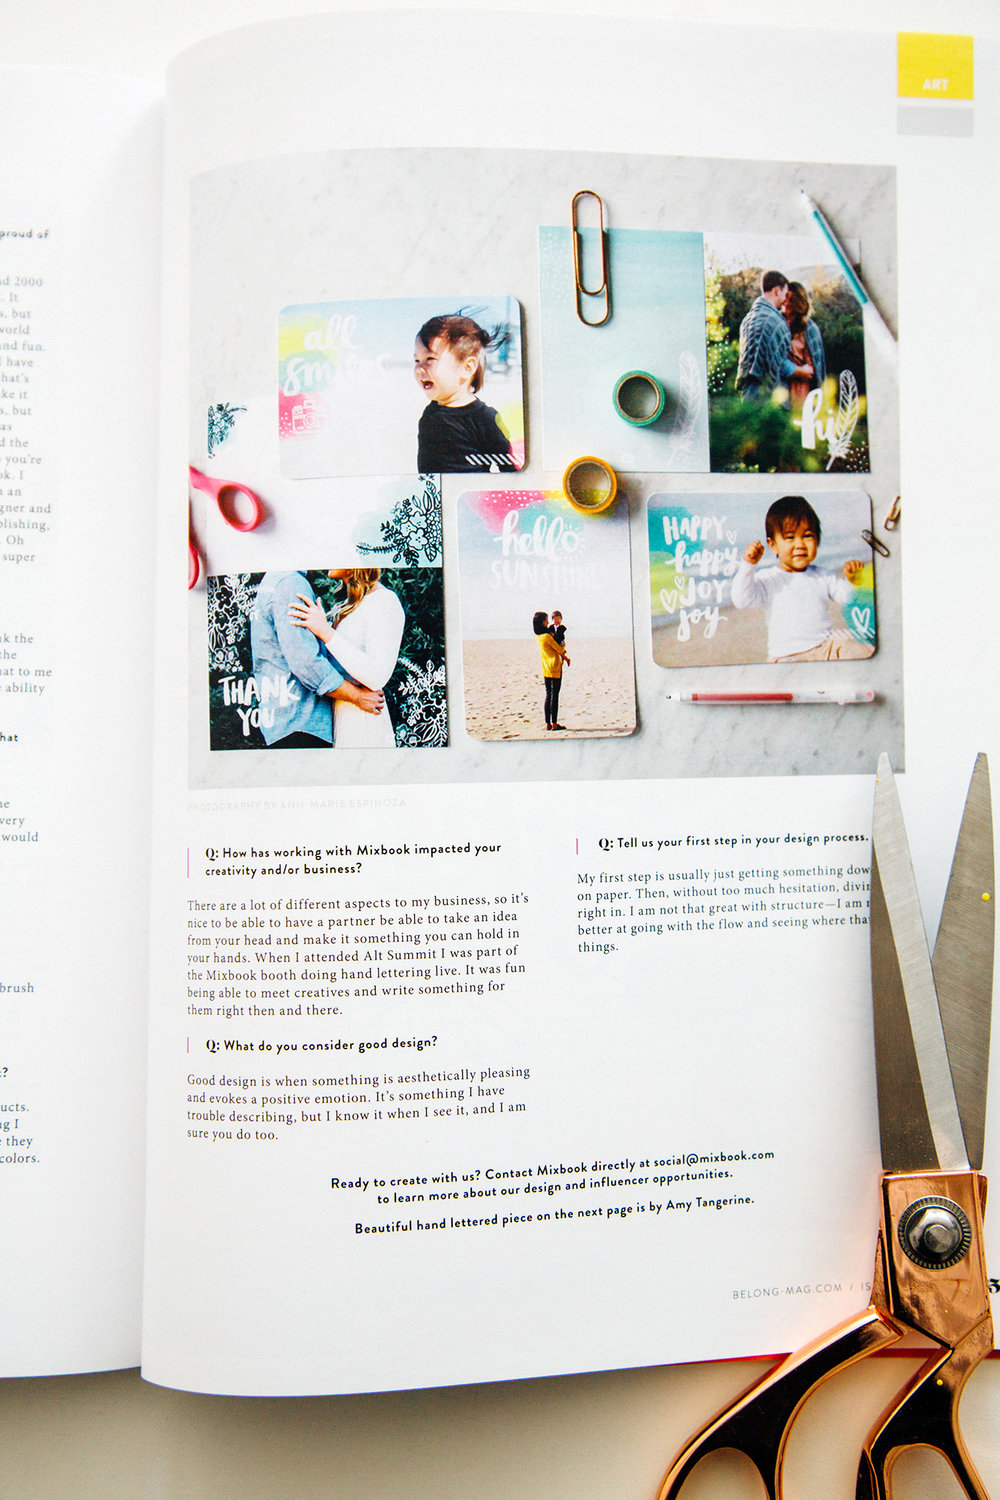 So honored to be in these gorgeous magazines - Project Calm and BELONG!  It's so fun being able to hold these in your hands and flip through them.  The design ...